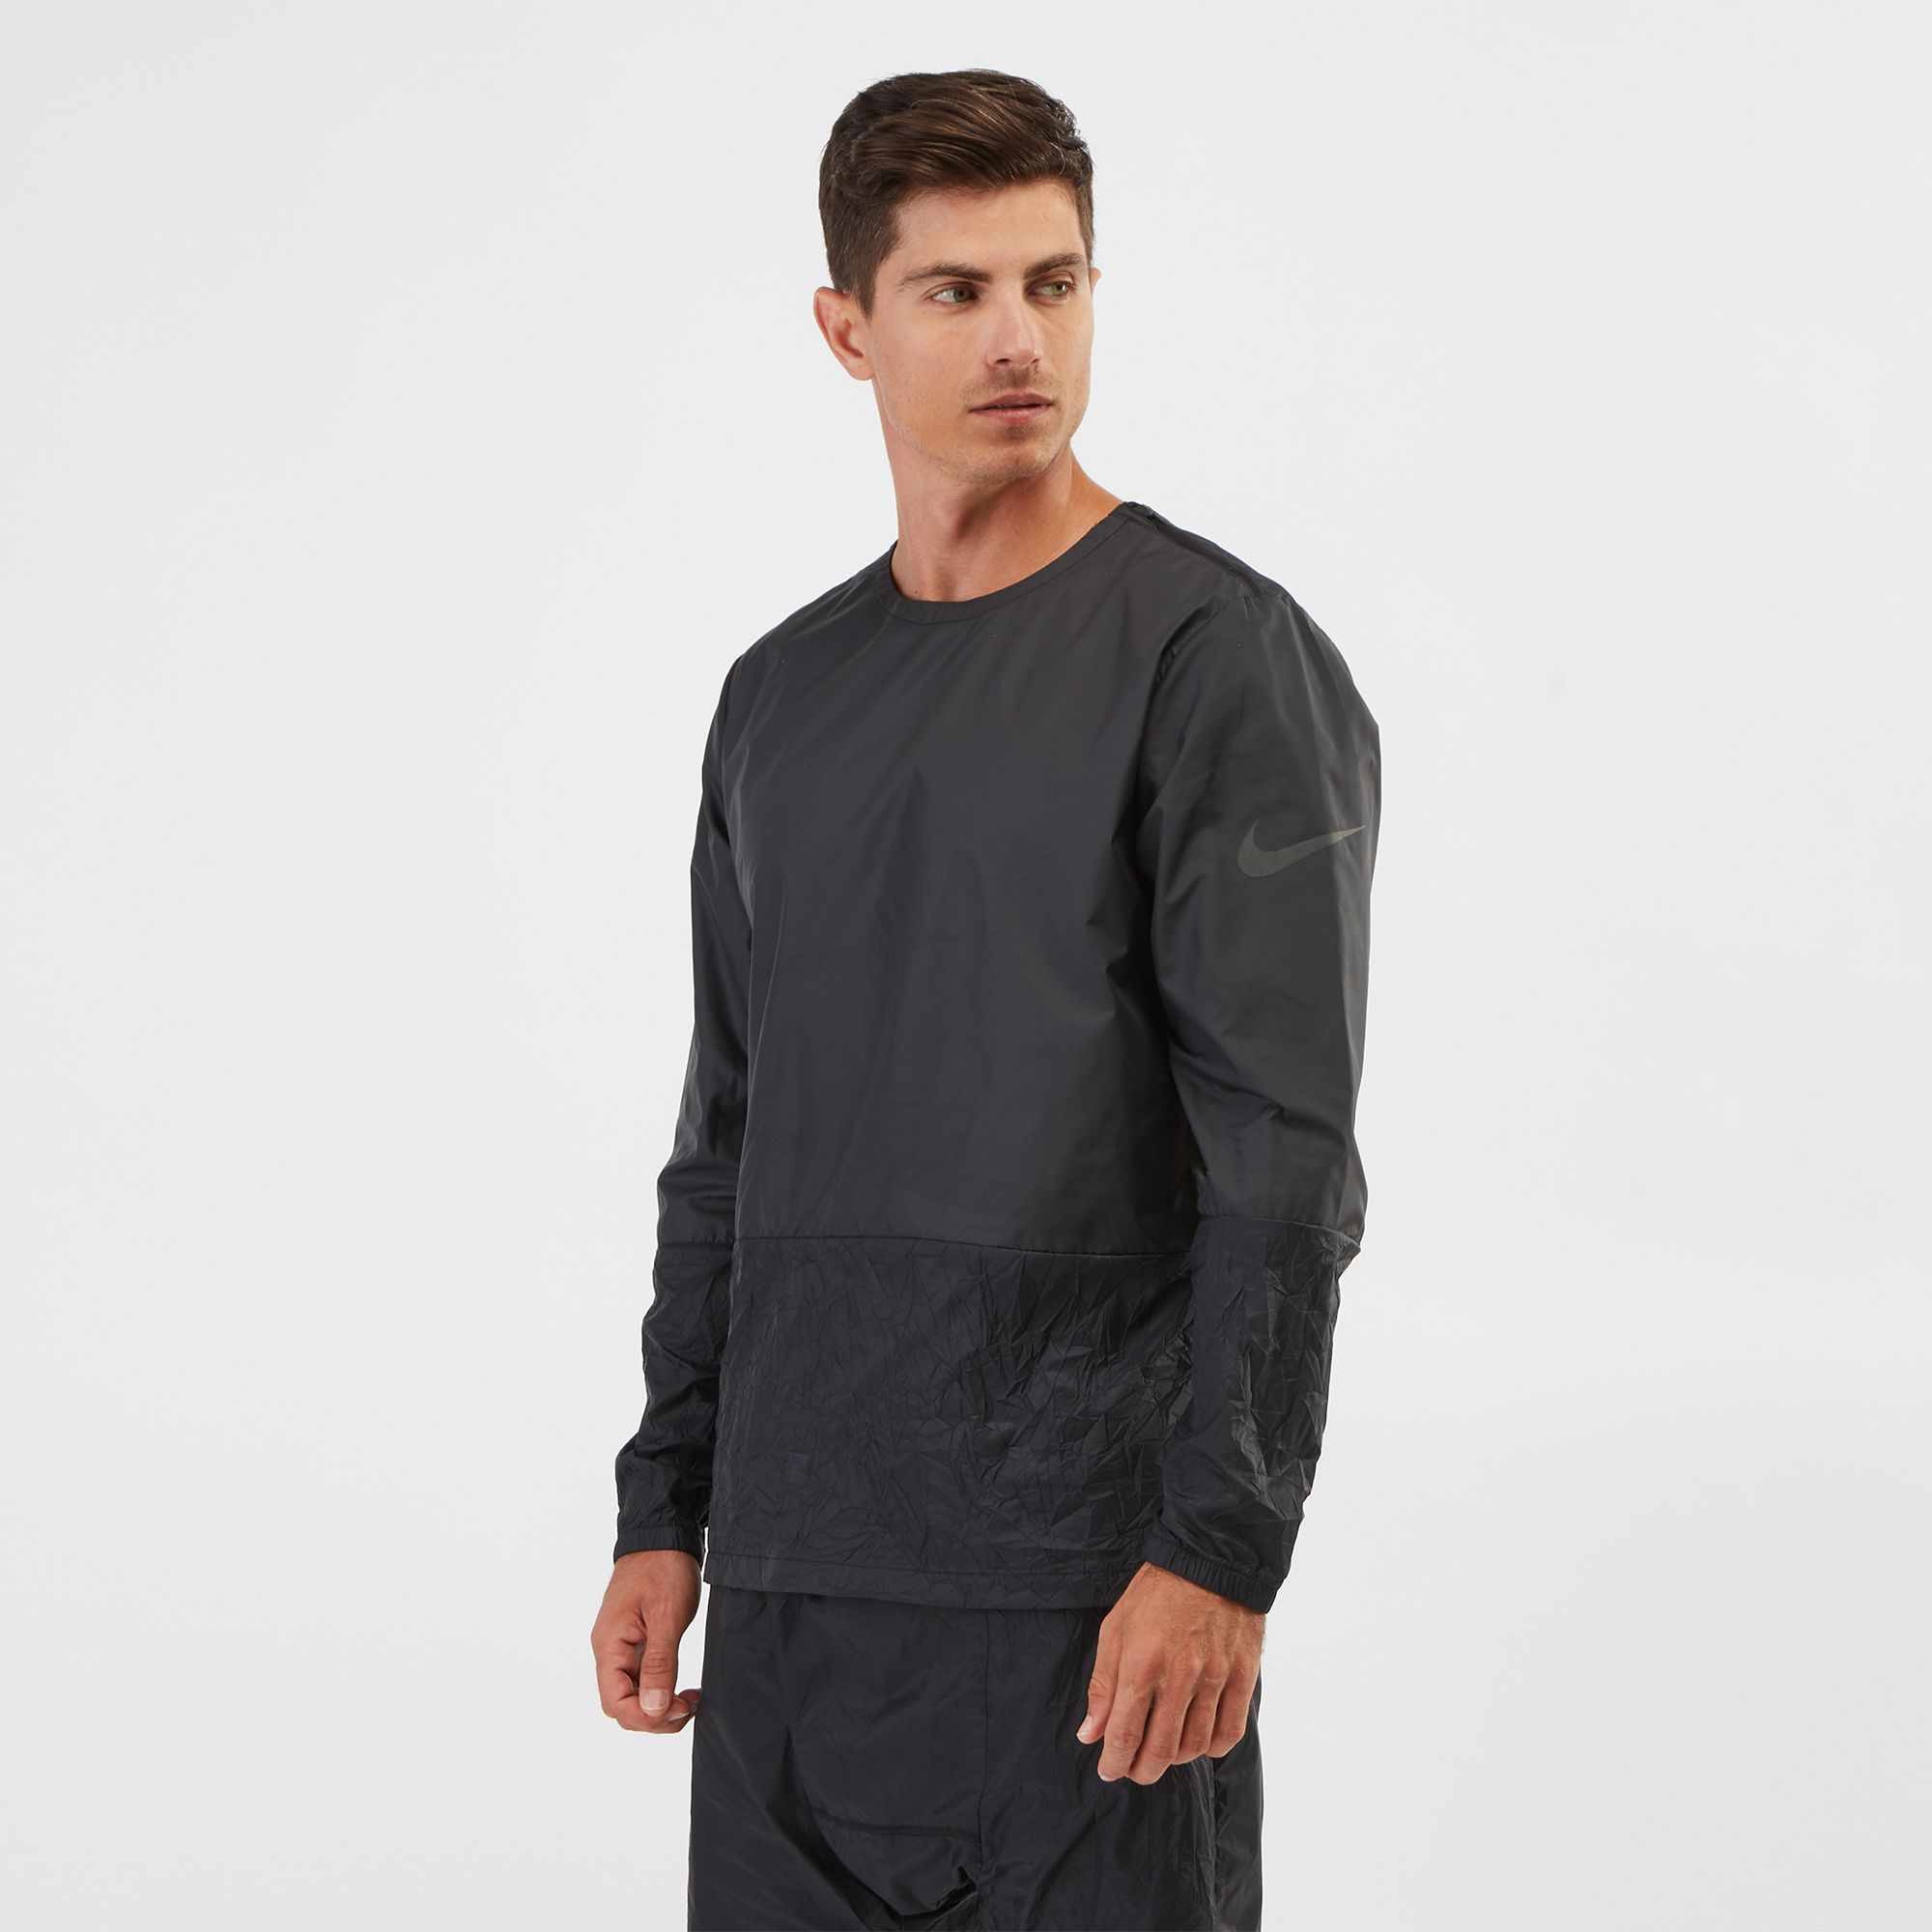 b4be4022 Nike Crew Running Jacket | Jackets | Clothing | Men's Sale | Sale | SSS